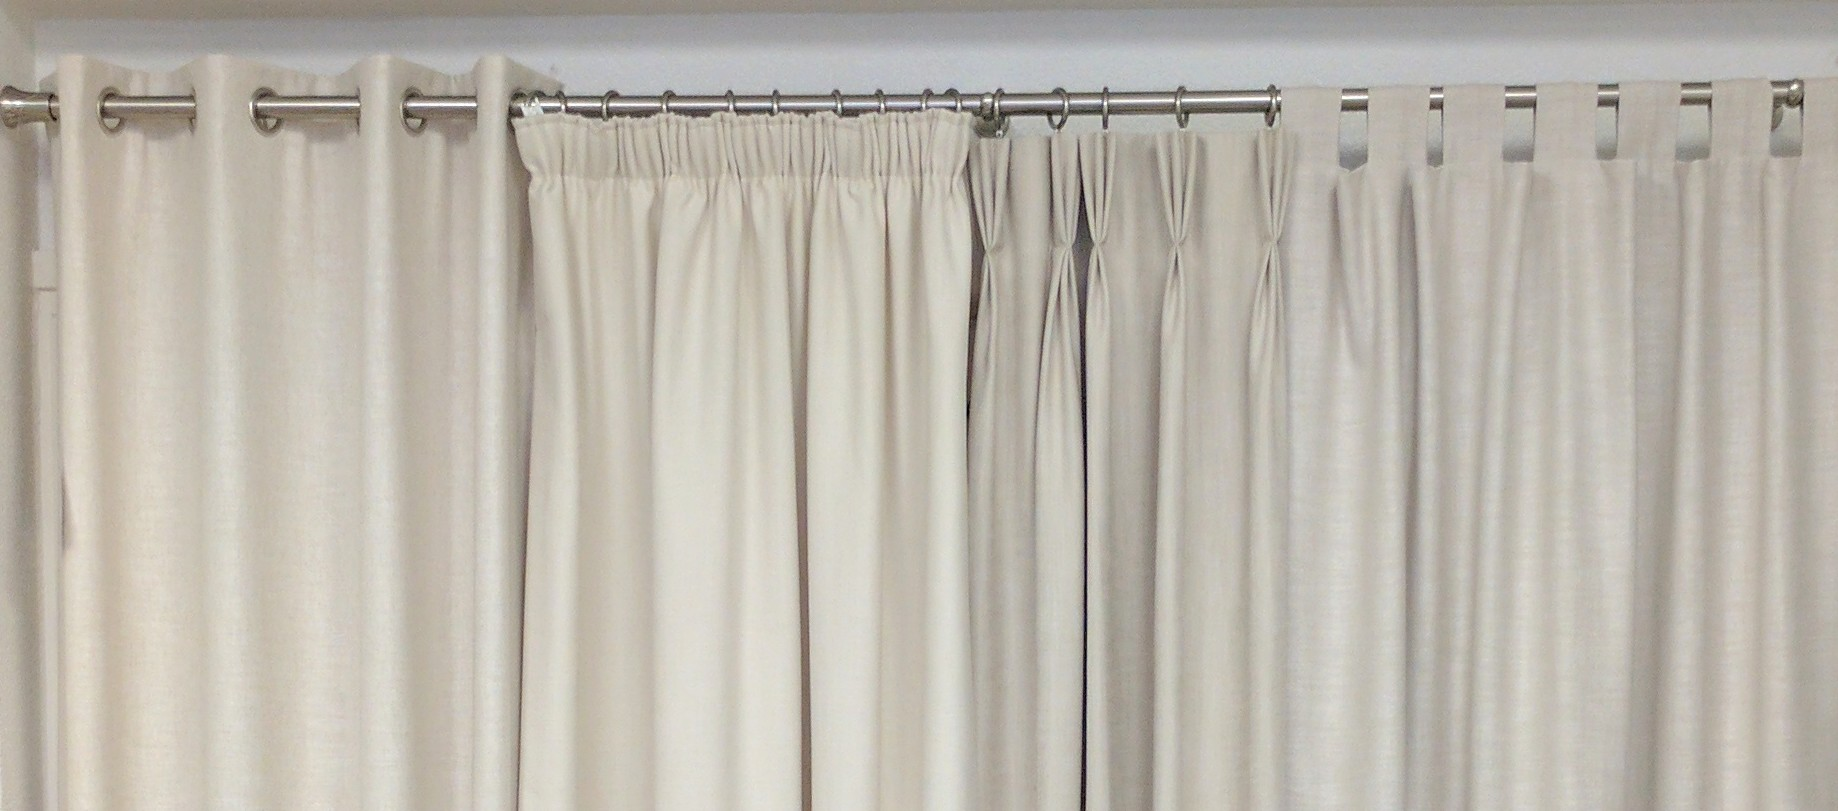 Curtain type display